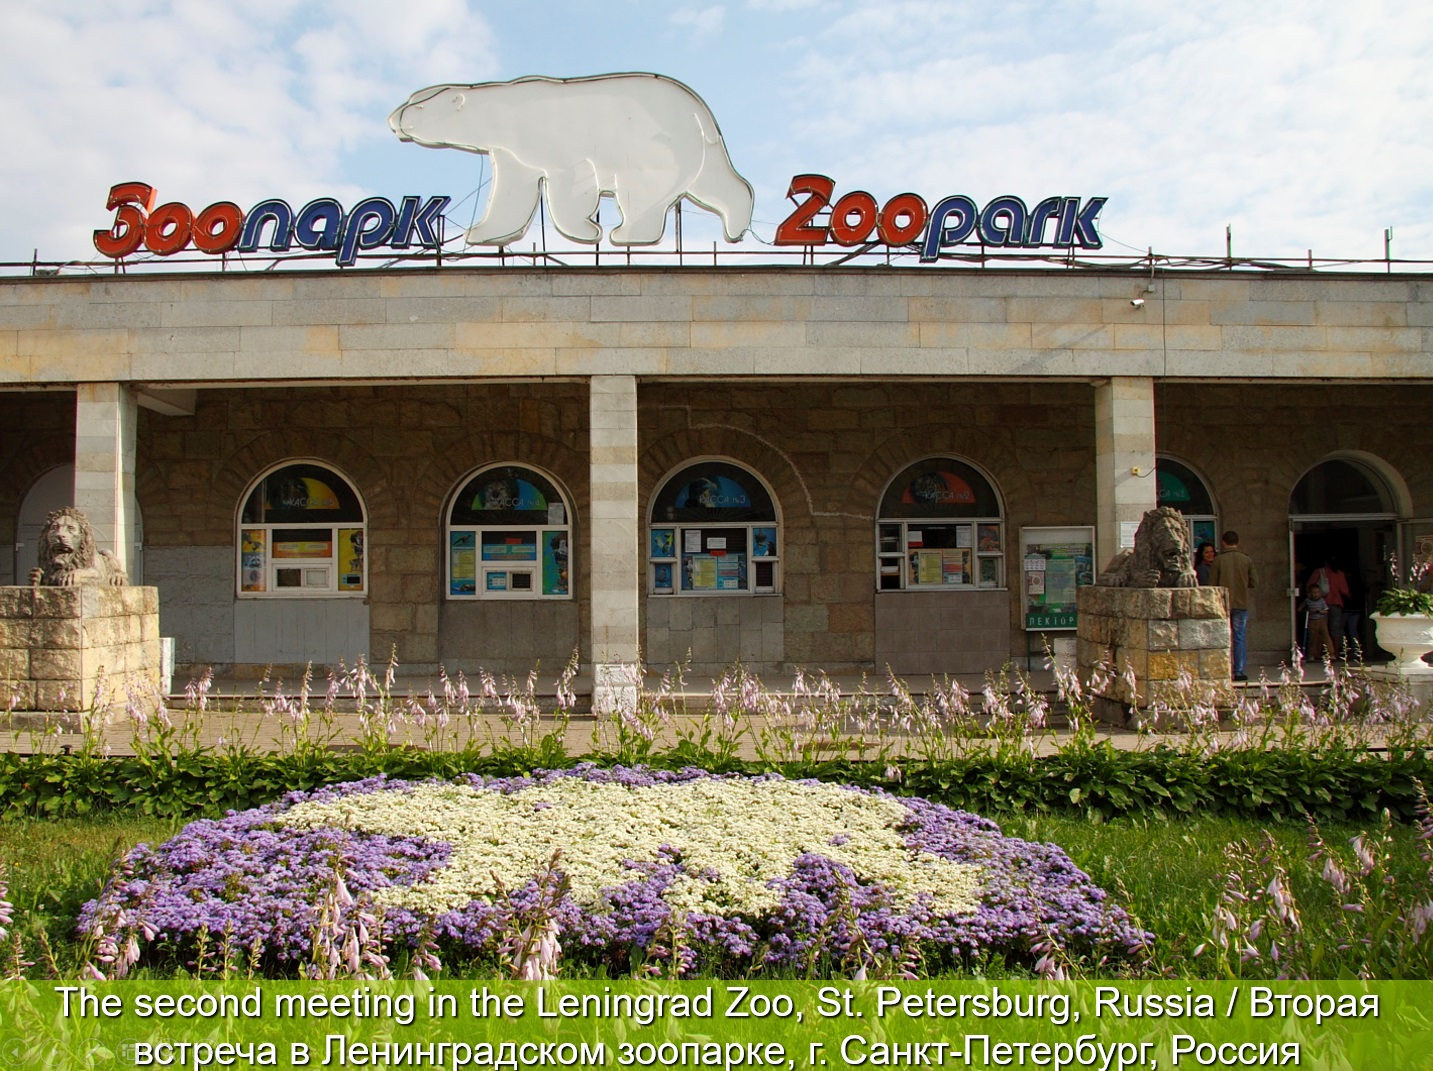 The second meeting in the Leningrad Zoo